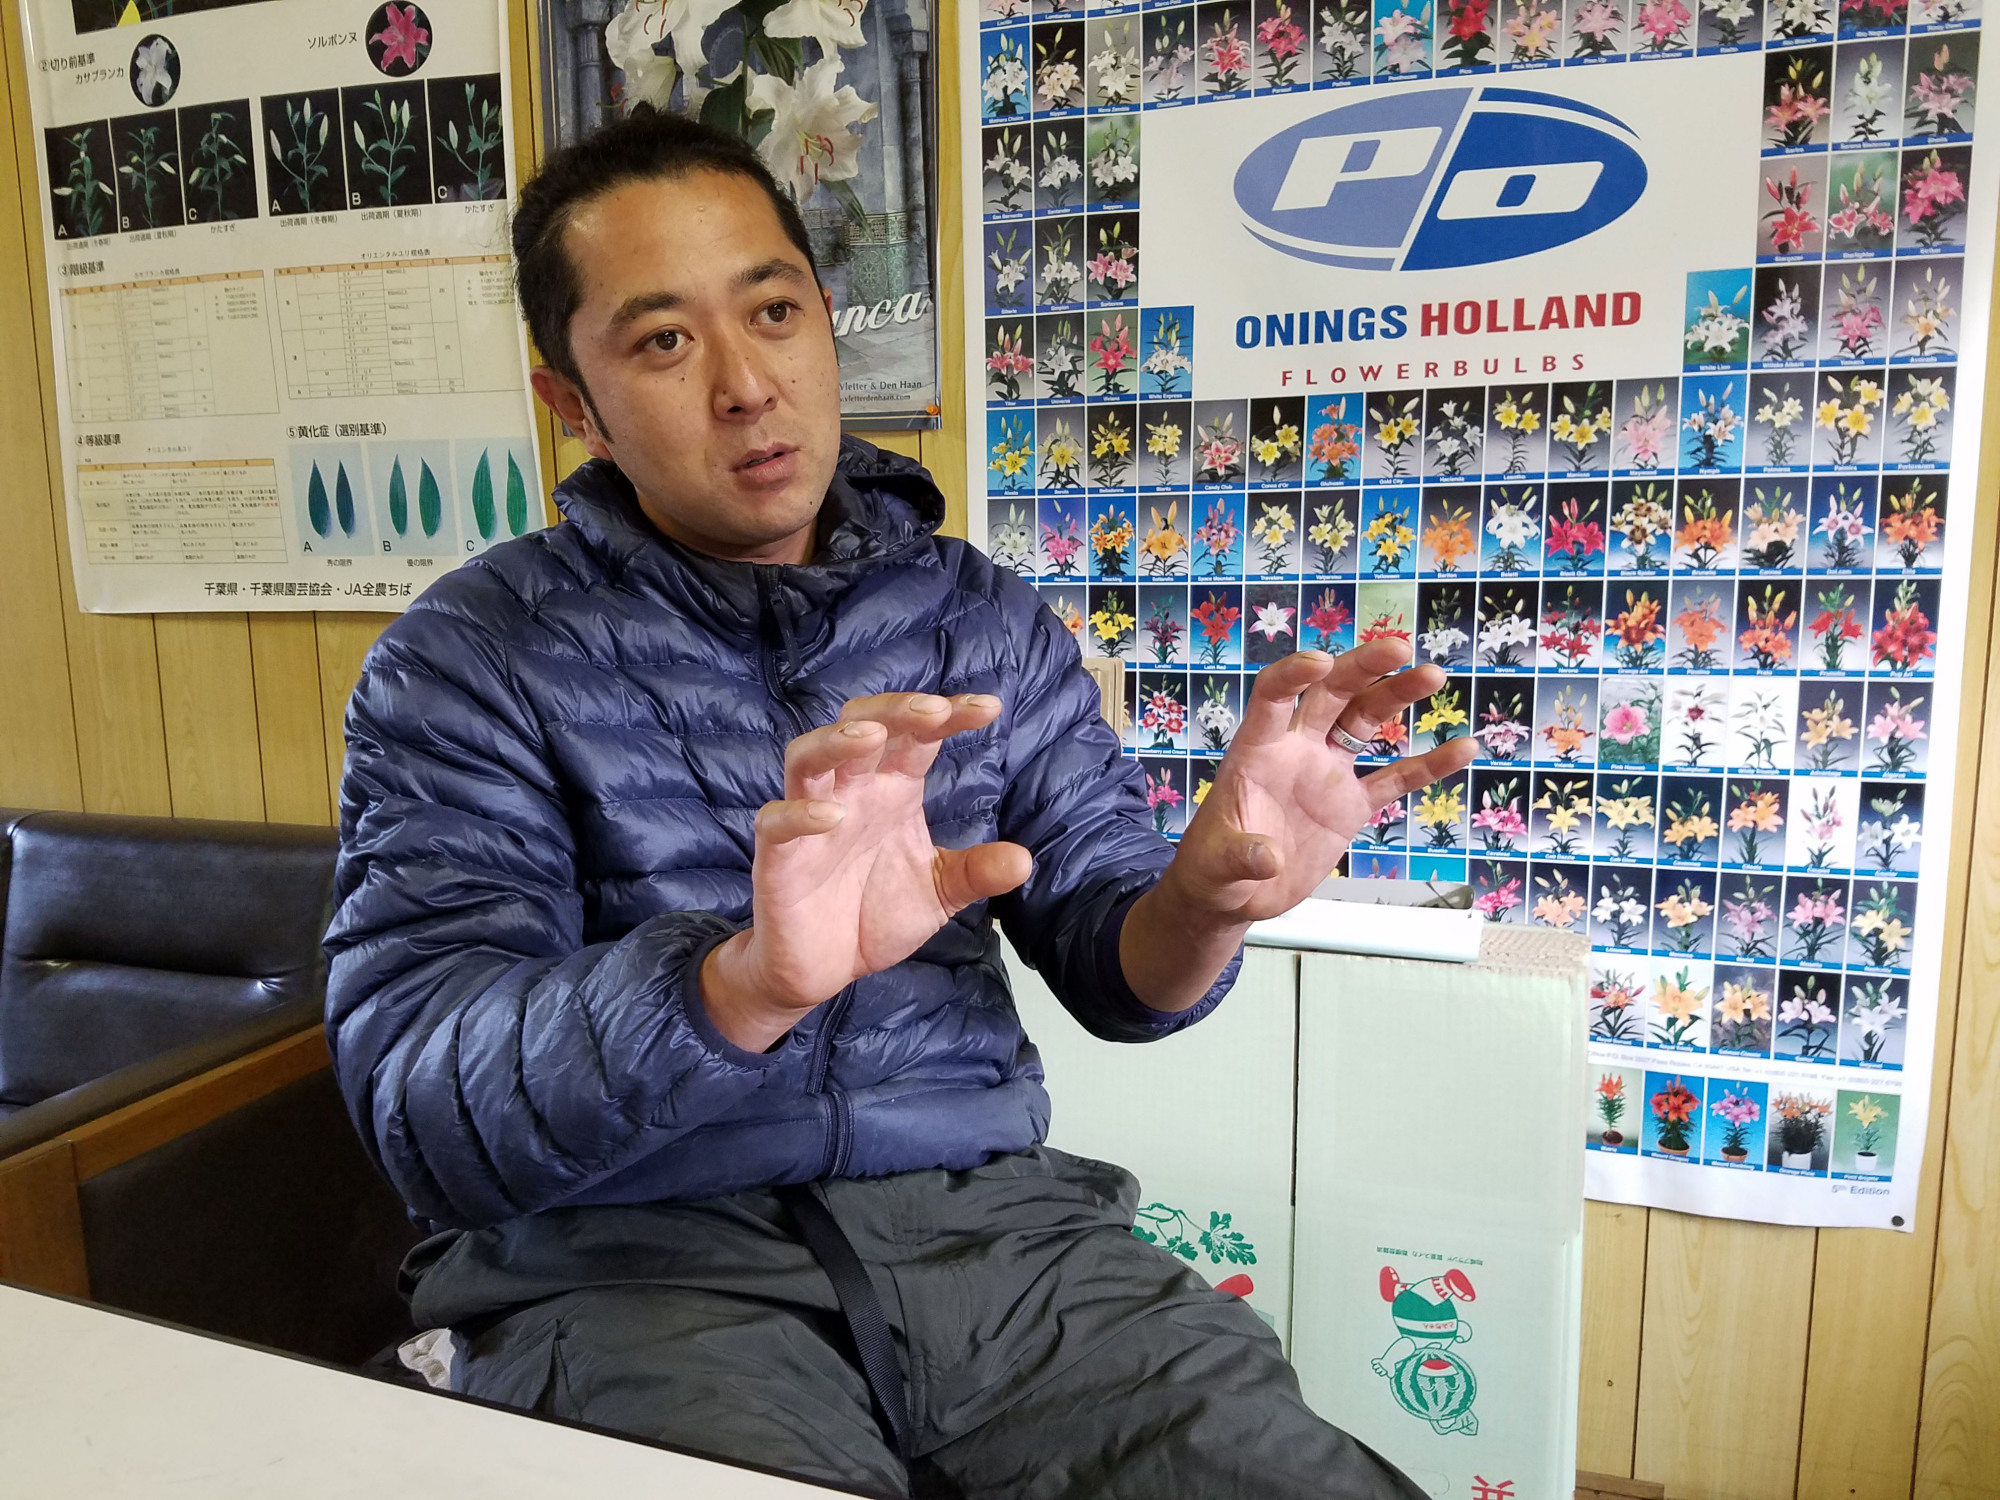 Kenji Tanaka, president of Chiba-based farming company Vegefru Farm, said during an interview on Nov. 16 that there are positive sides to Japanese 'yankii' delinquents, such as their fighting spirit and loyalty to friends. | TOMOHIRO OSAKI